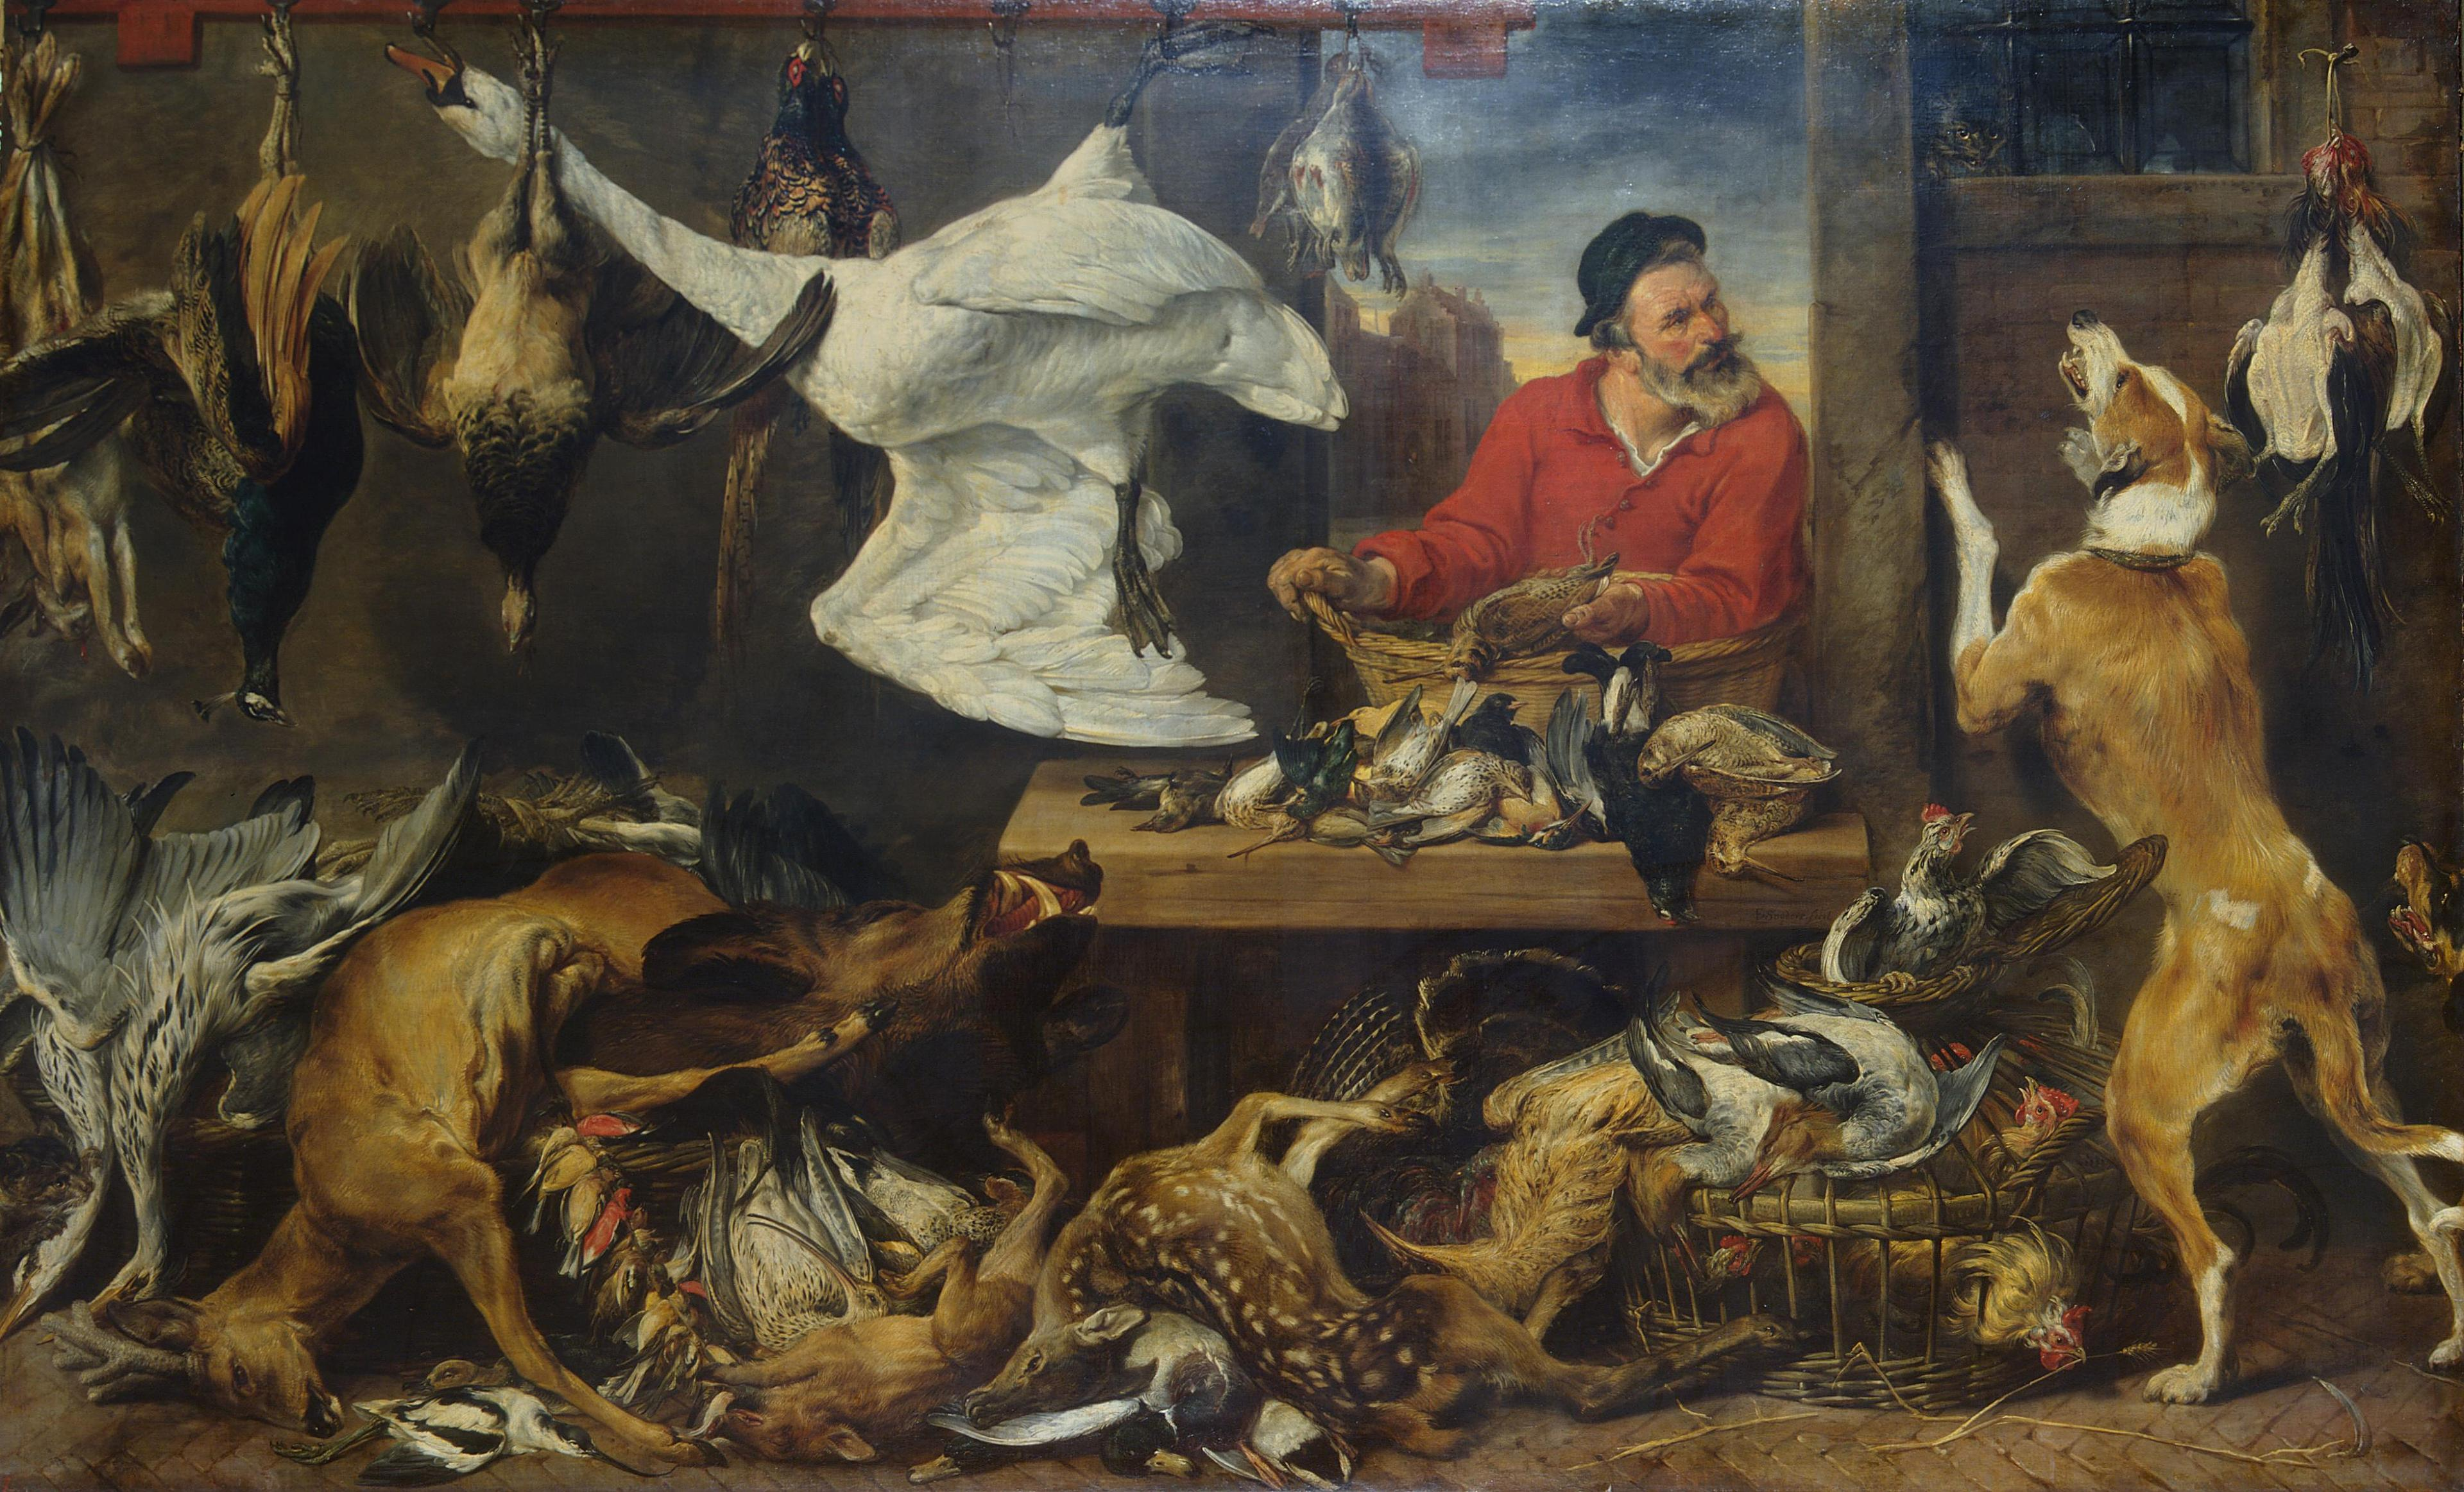 The painter Frans Snyders: biography, creativity, and interesting facts 62